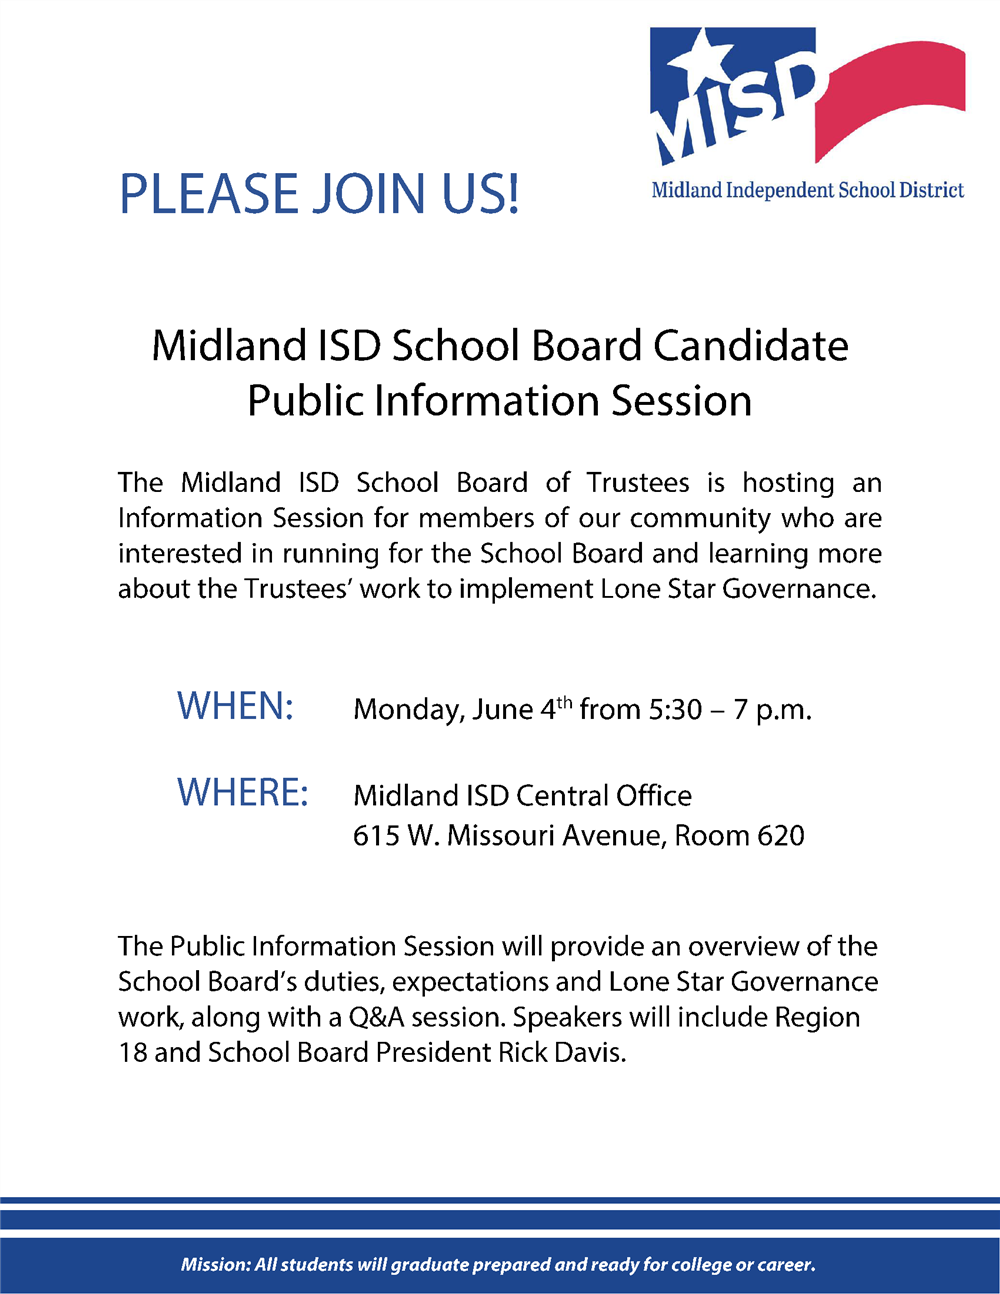 School Board Candidate Public Information Session